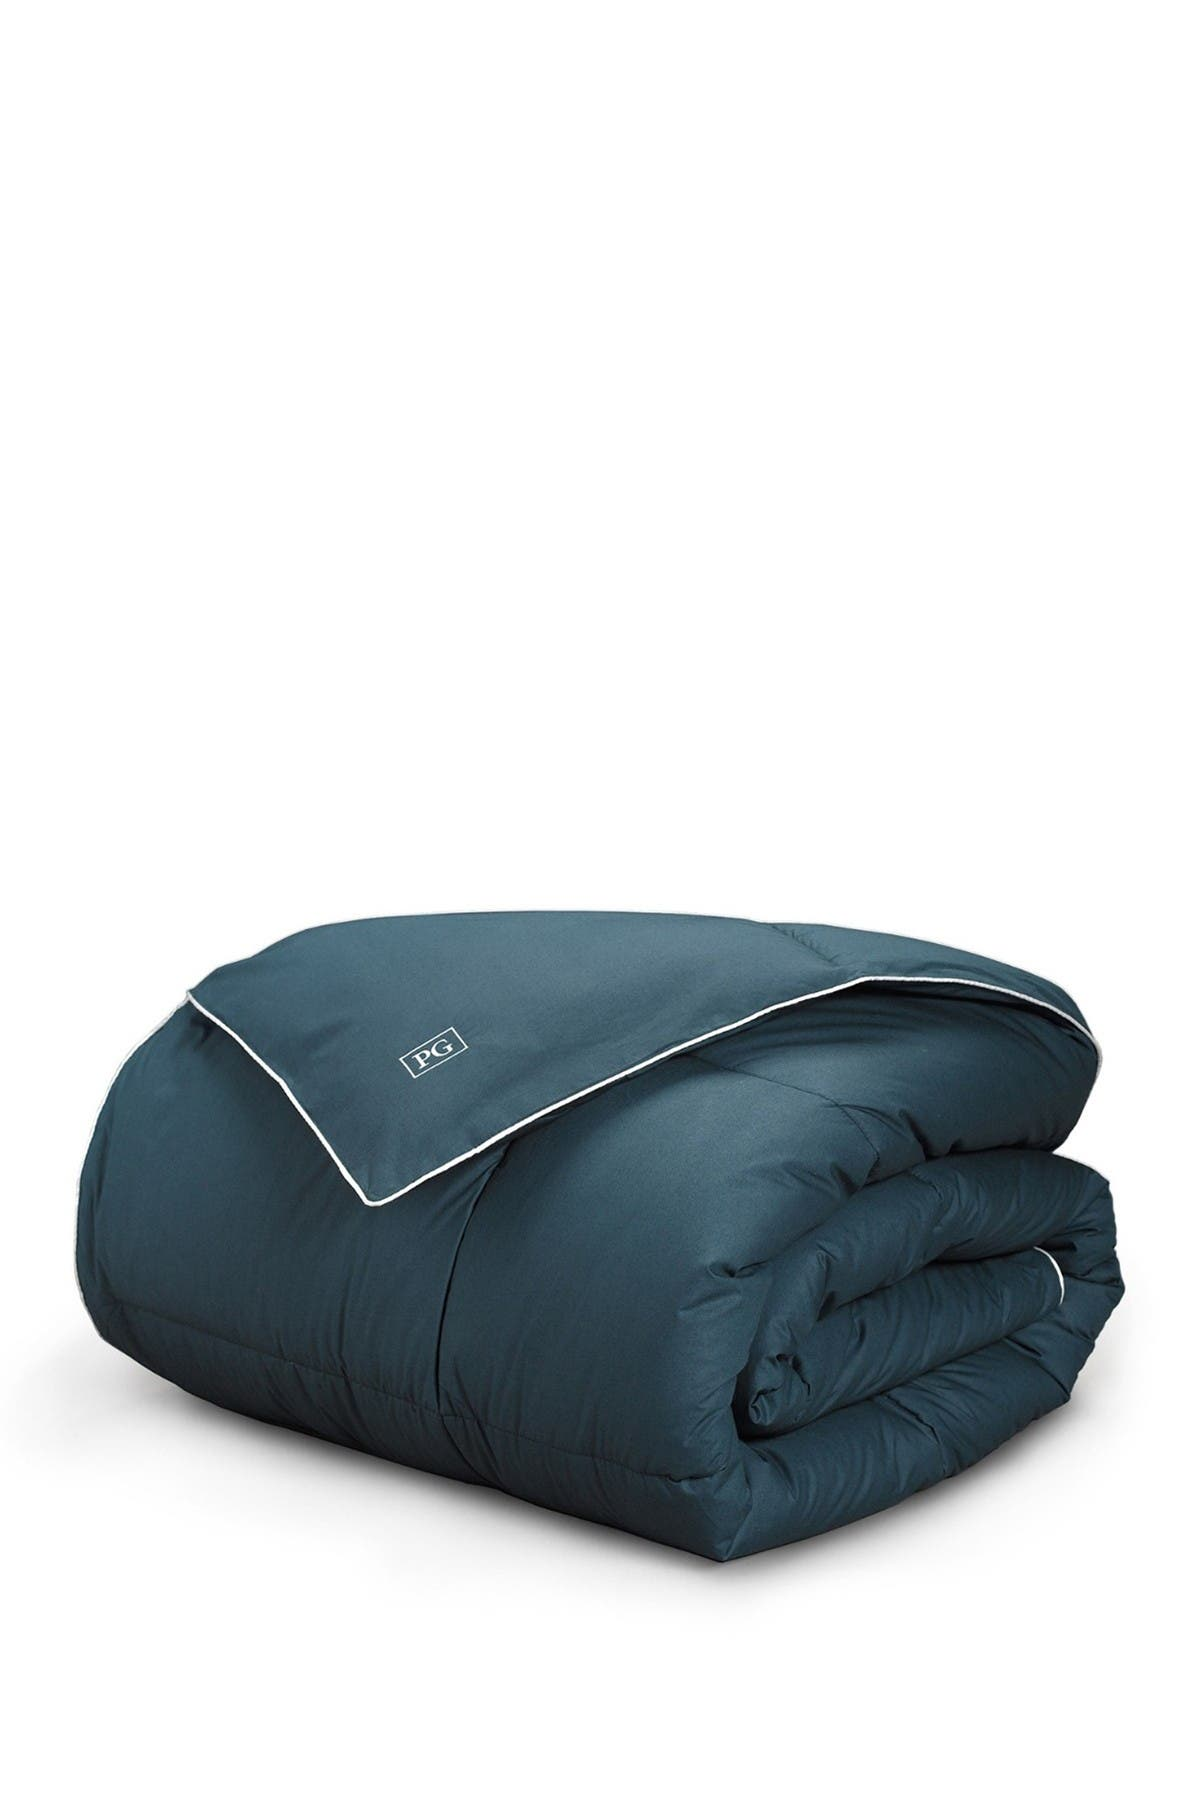 Image of Pillow Guy Navy/Teal All Season Down Alternative Comforter